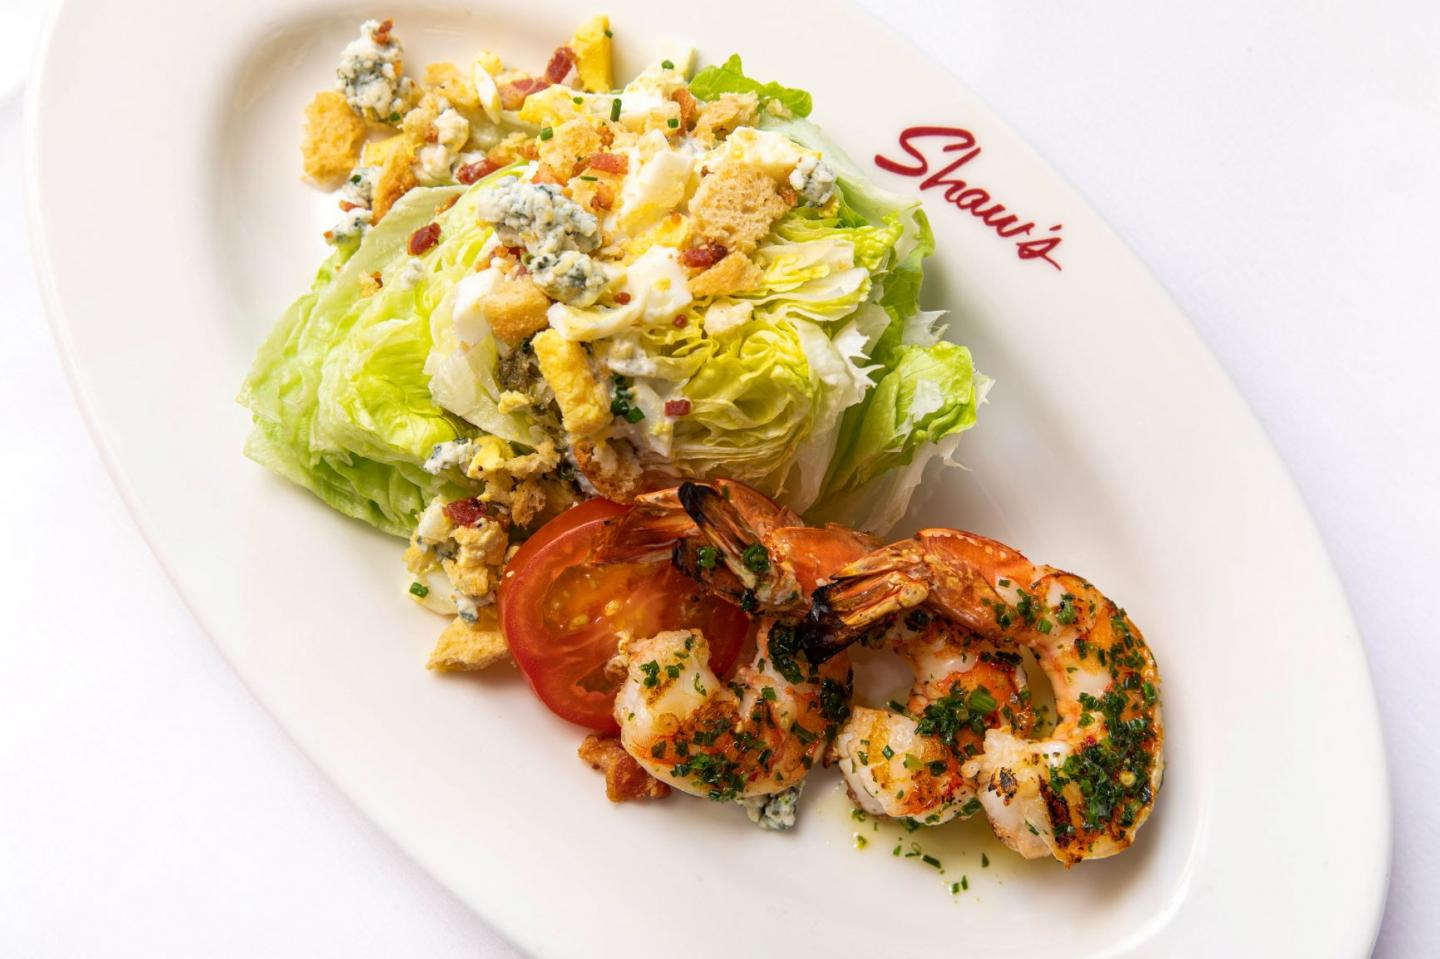 wedge salad with grilled shrimp at Shaw's Crab house lunch